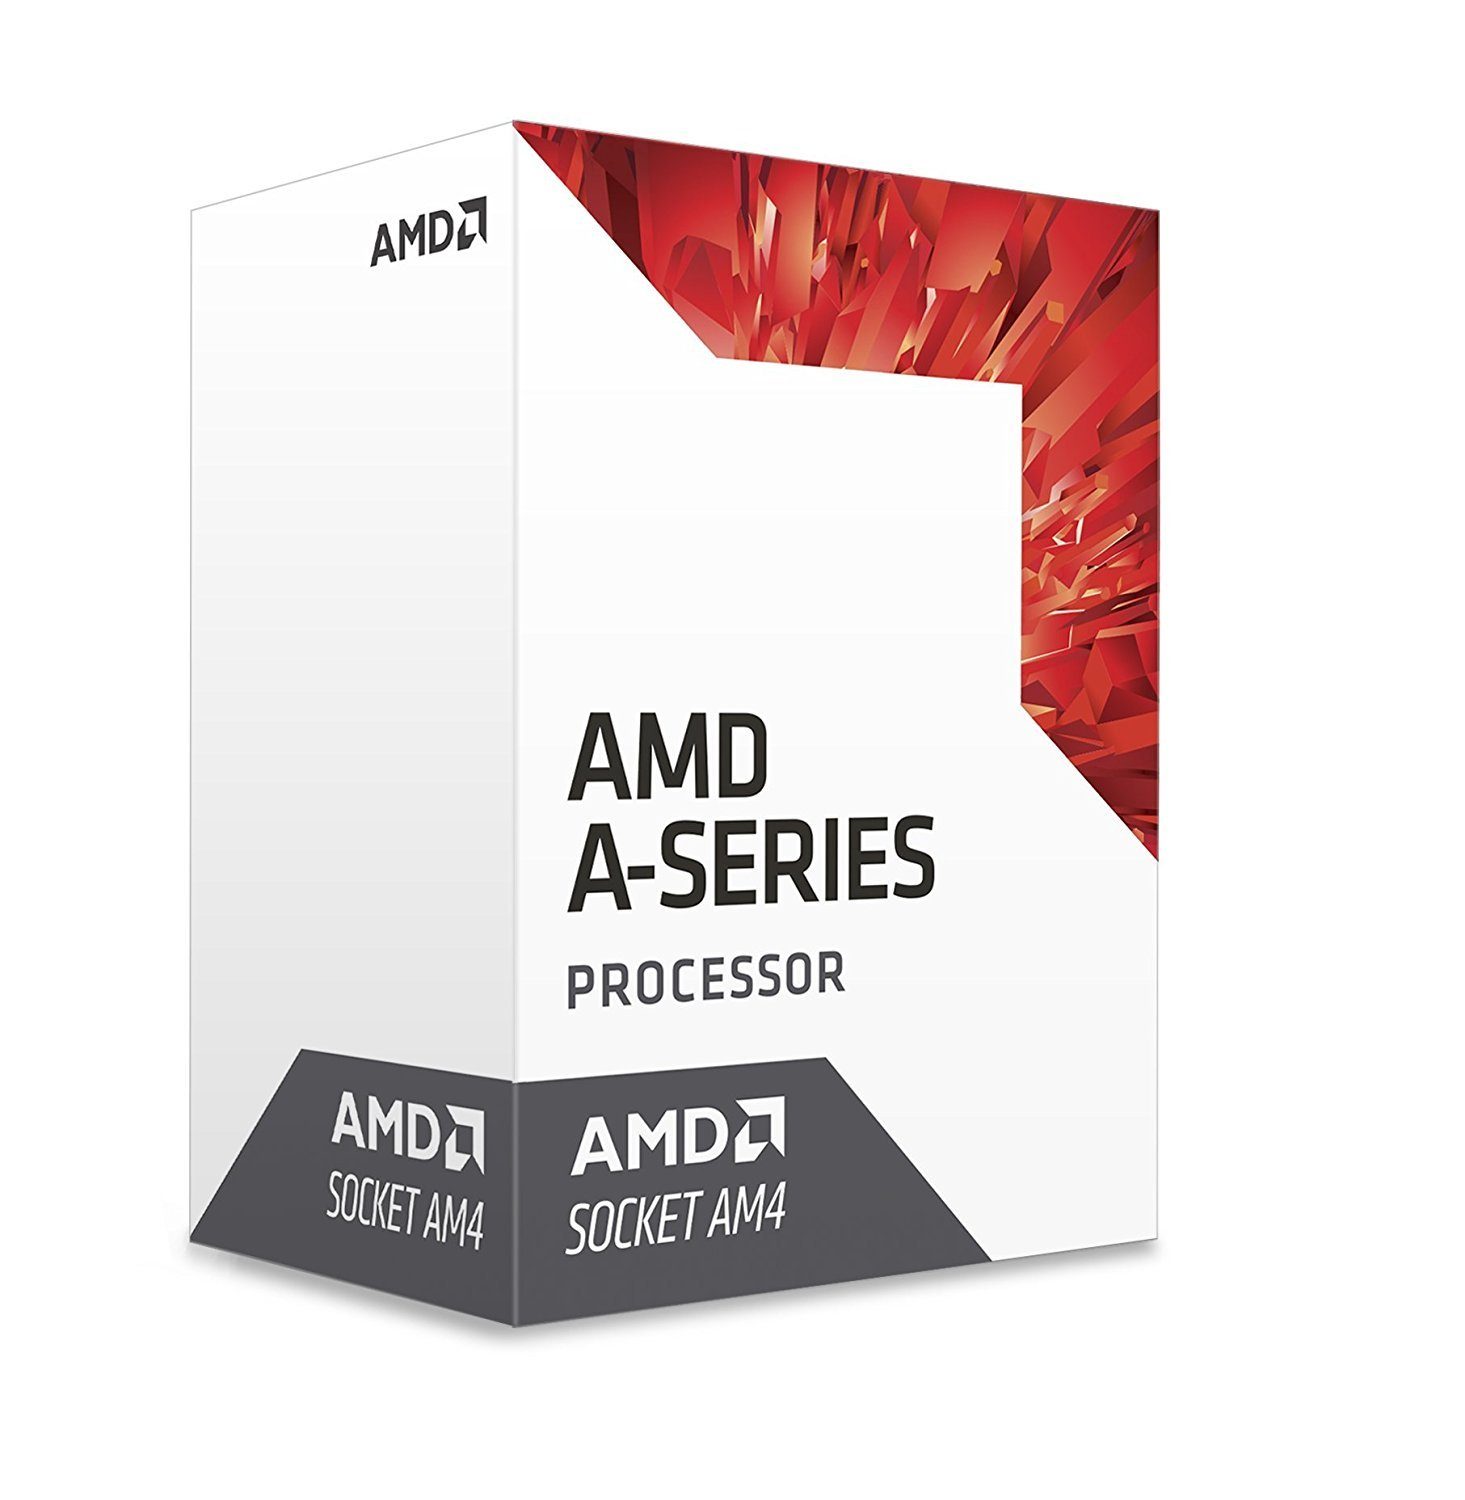 AMD A6-9500E Dual-core (2 Core) 3 GHz Processor - Socket AM4Retail Pack by AMD